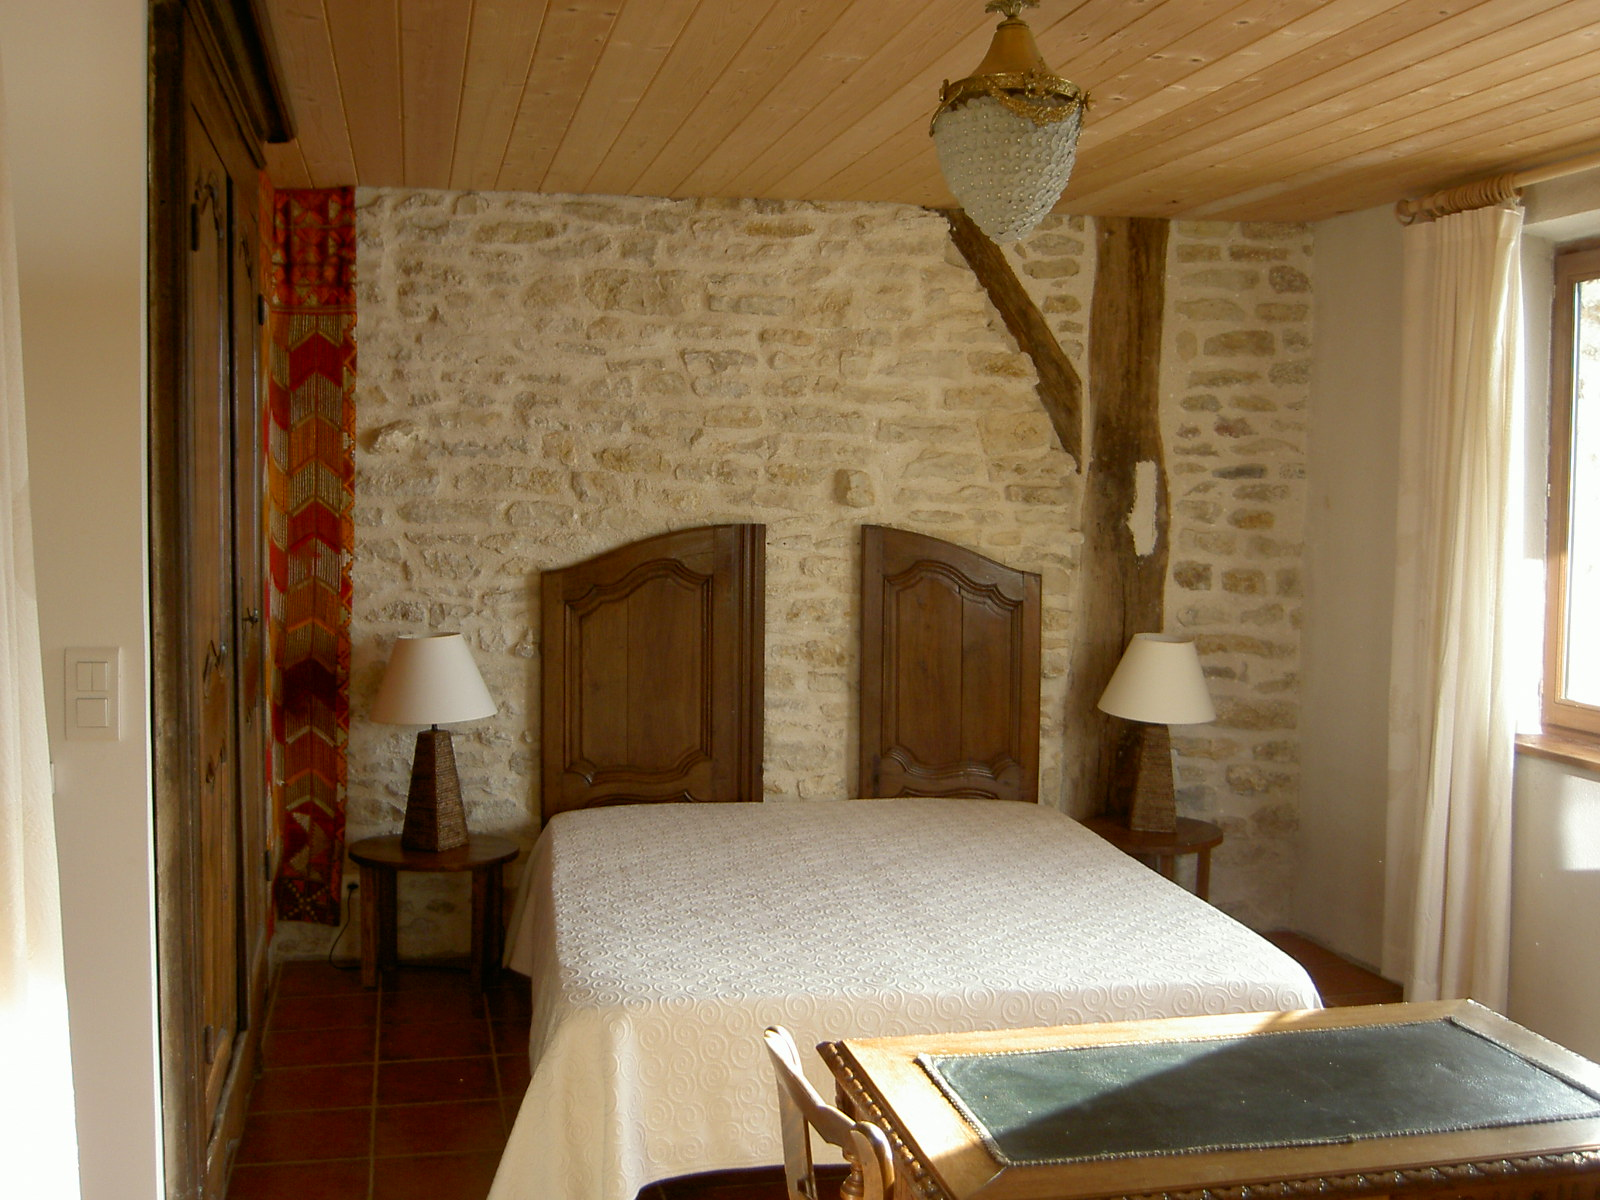 chambre confort - bourgogne en douce à villeferry